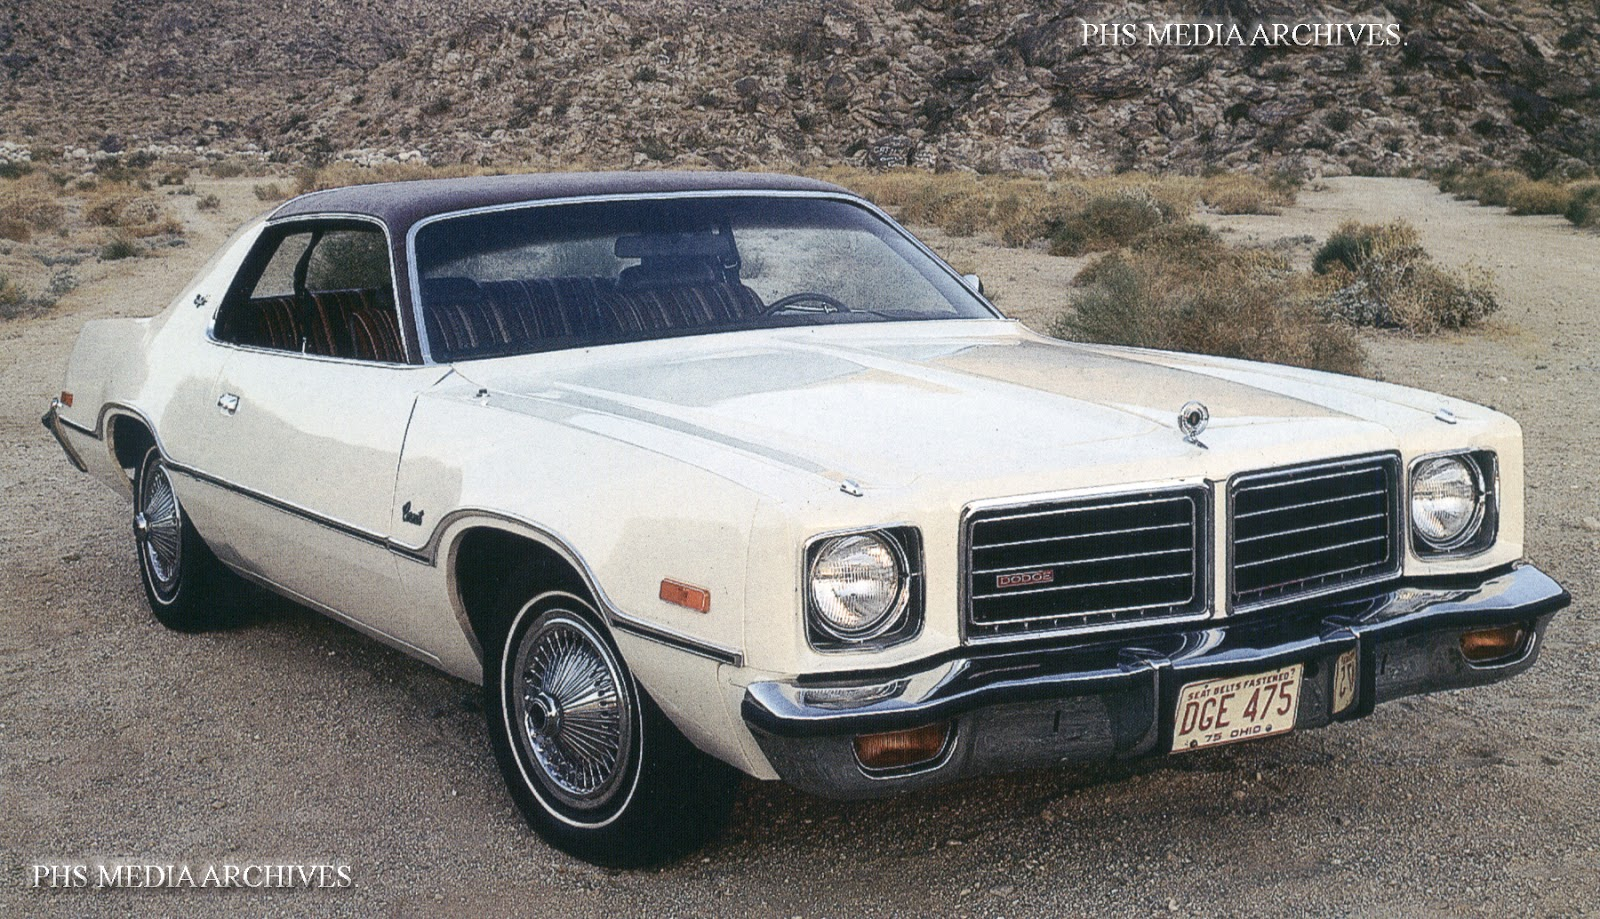 About mid 1976 the Charger Sport coupe disappeared but the Coronet Brougham  was virtually the same car.